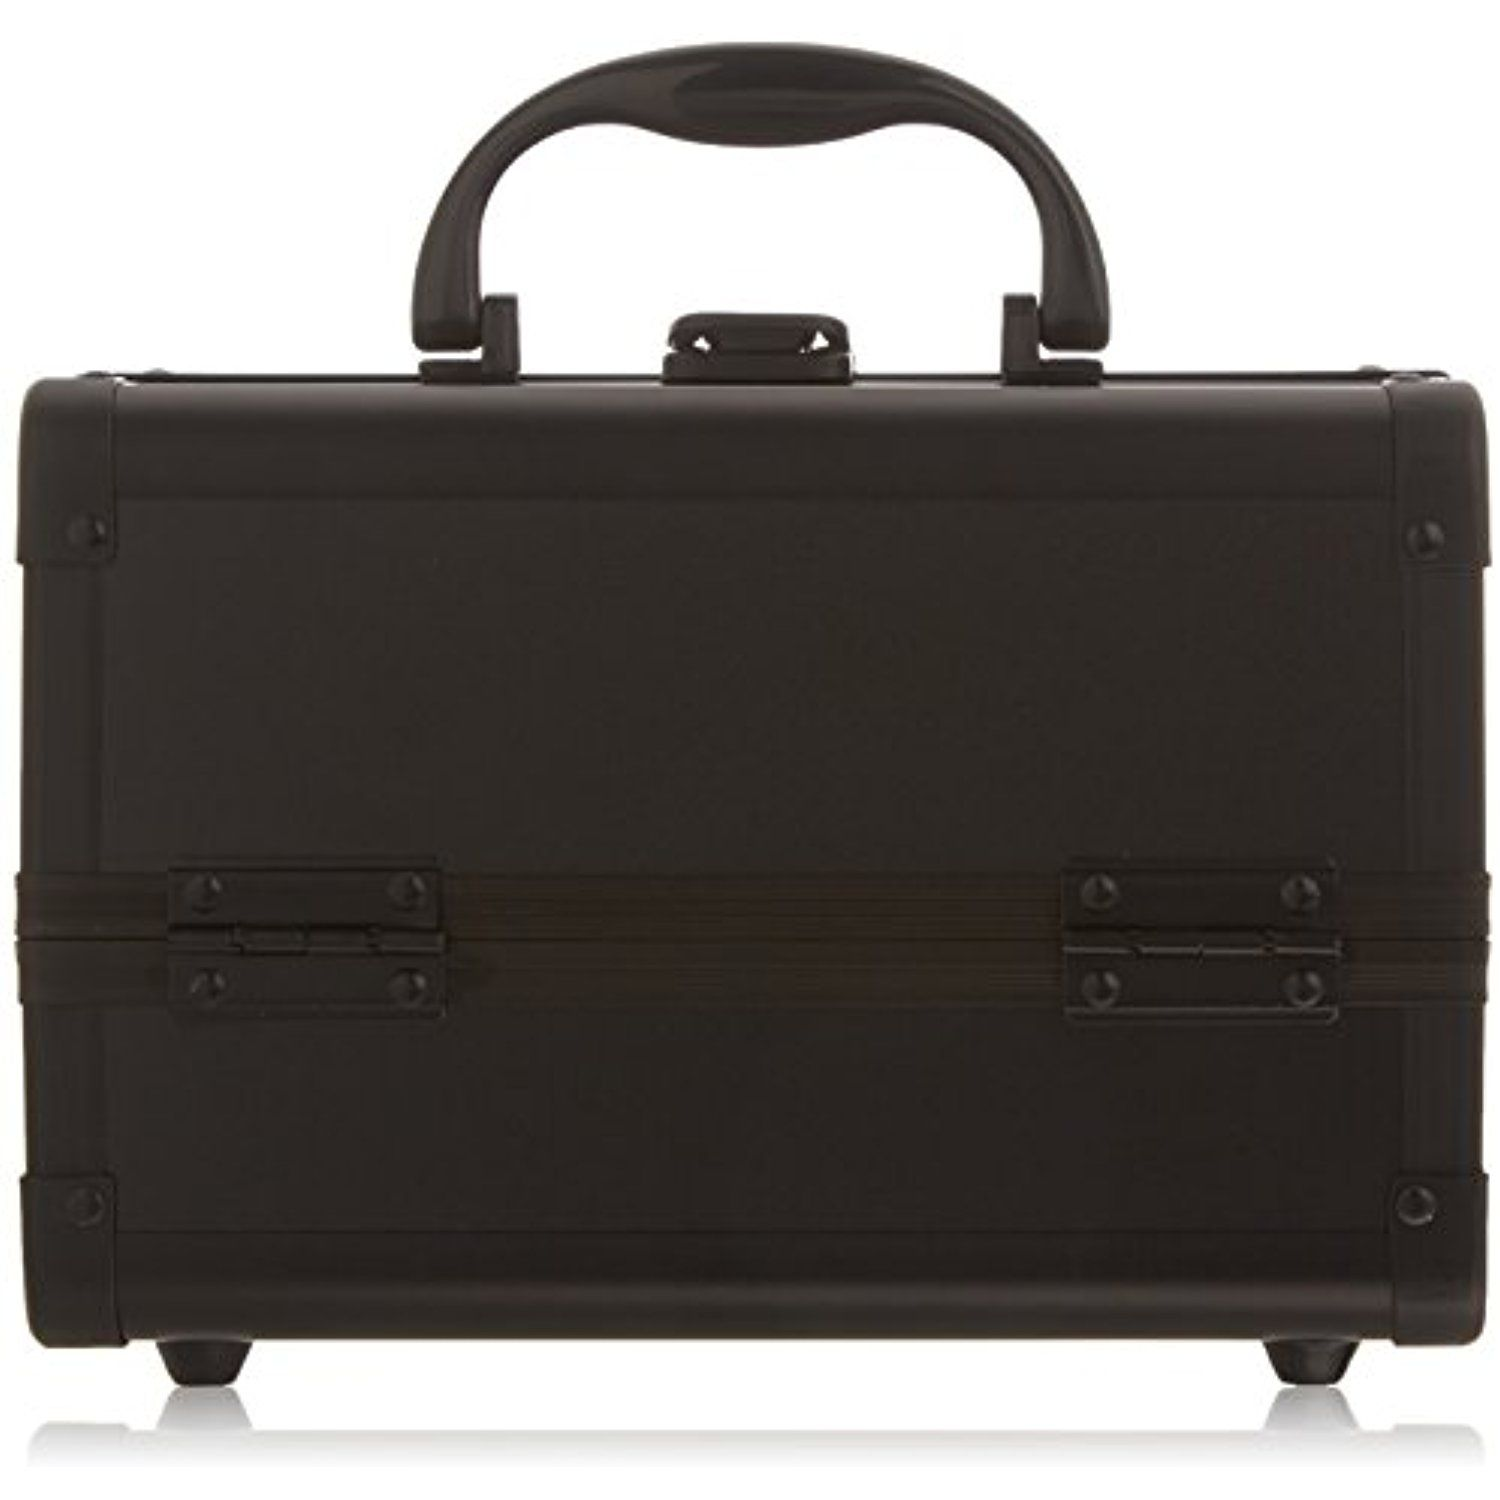 649a46e00 JustCase Cosmetic Makeup Train Case with Mirror and Easy Clean Extendable  Trays, Black Smooth,